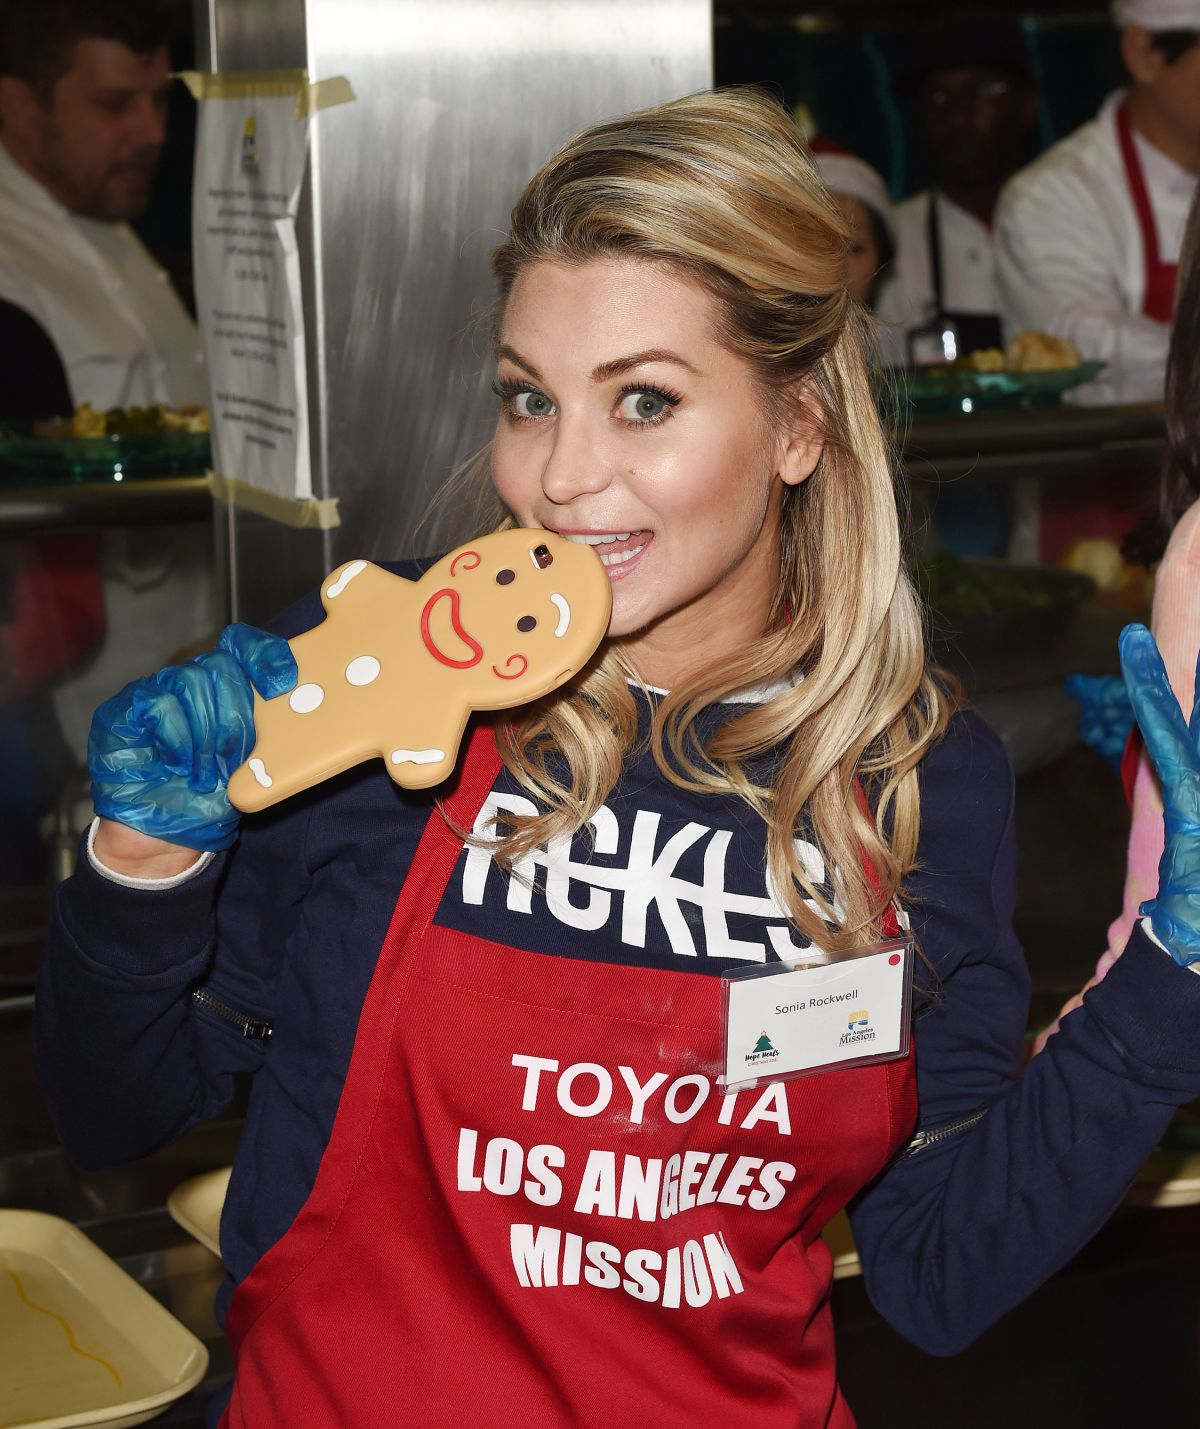 SONIA ROCKWELL at Los Angeles Mission Christmas Celebration 12/23/2016